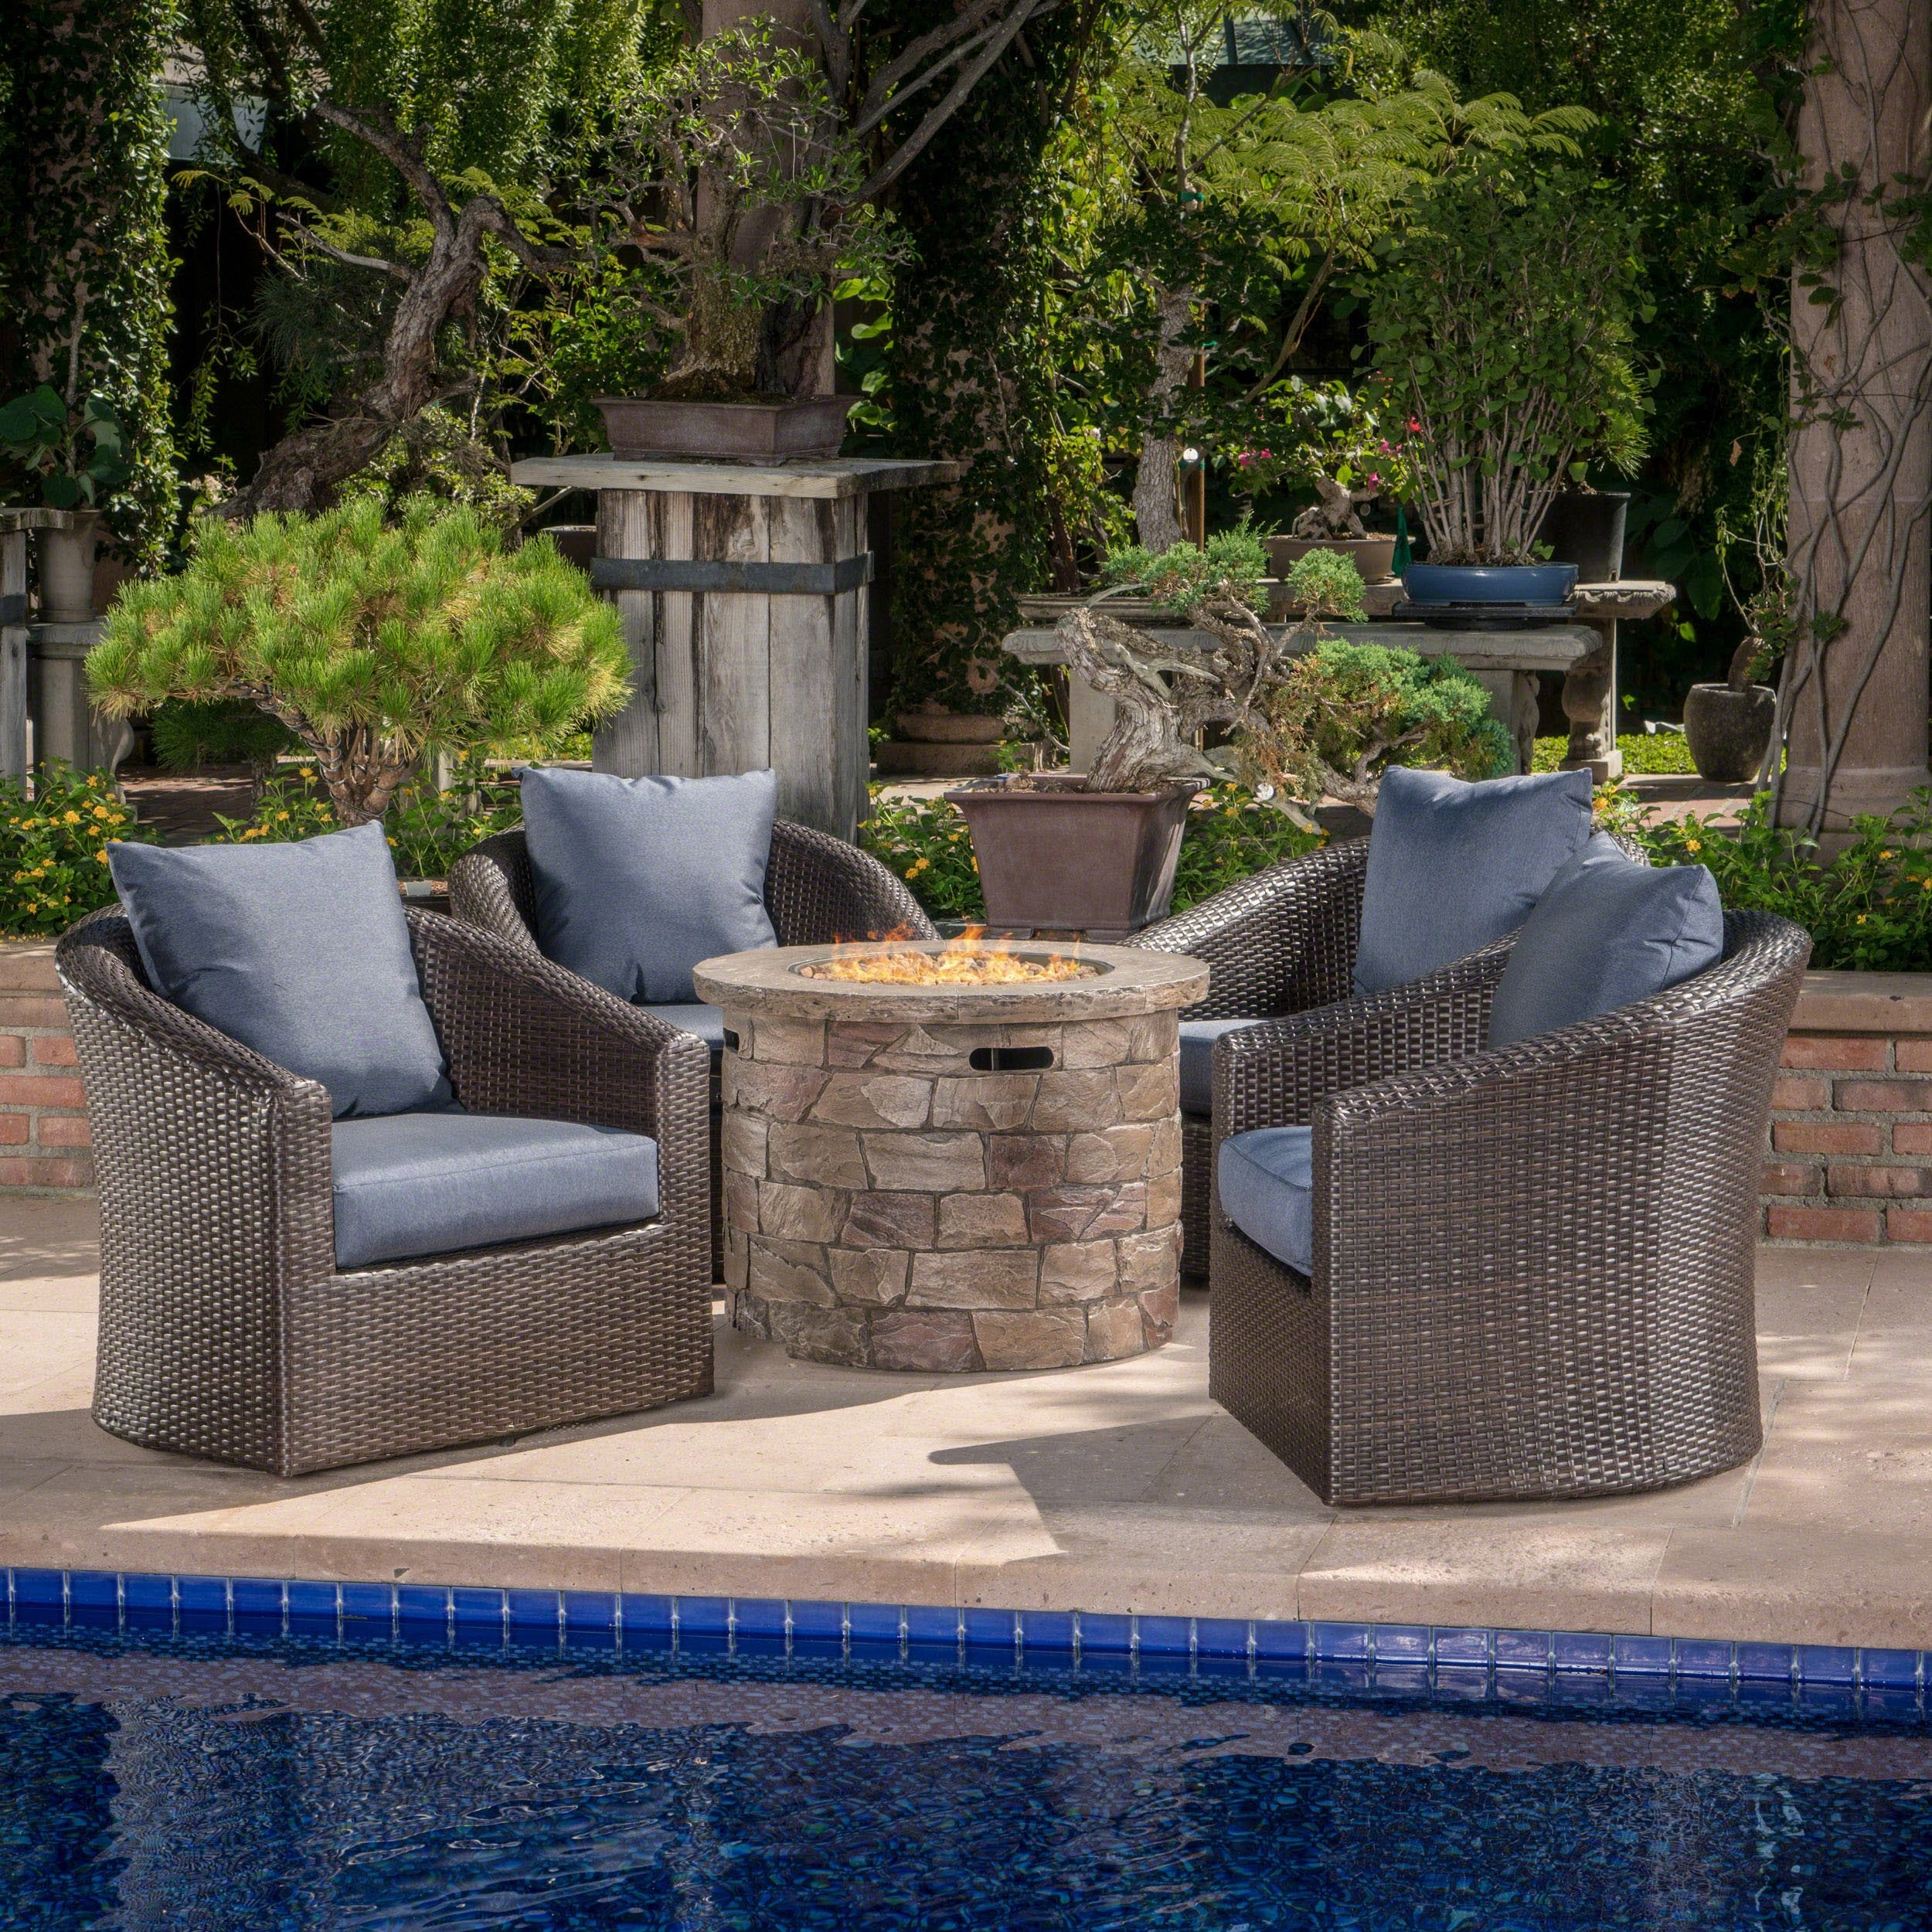 Outdoor 5 Piece Wicker Swivel Club Chair Fire Pit Chat Set Nh735203 Noble House Furniture